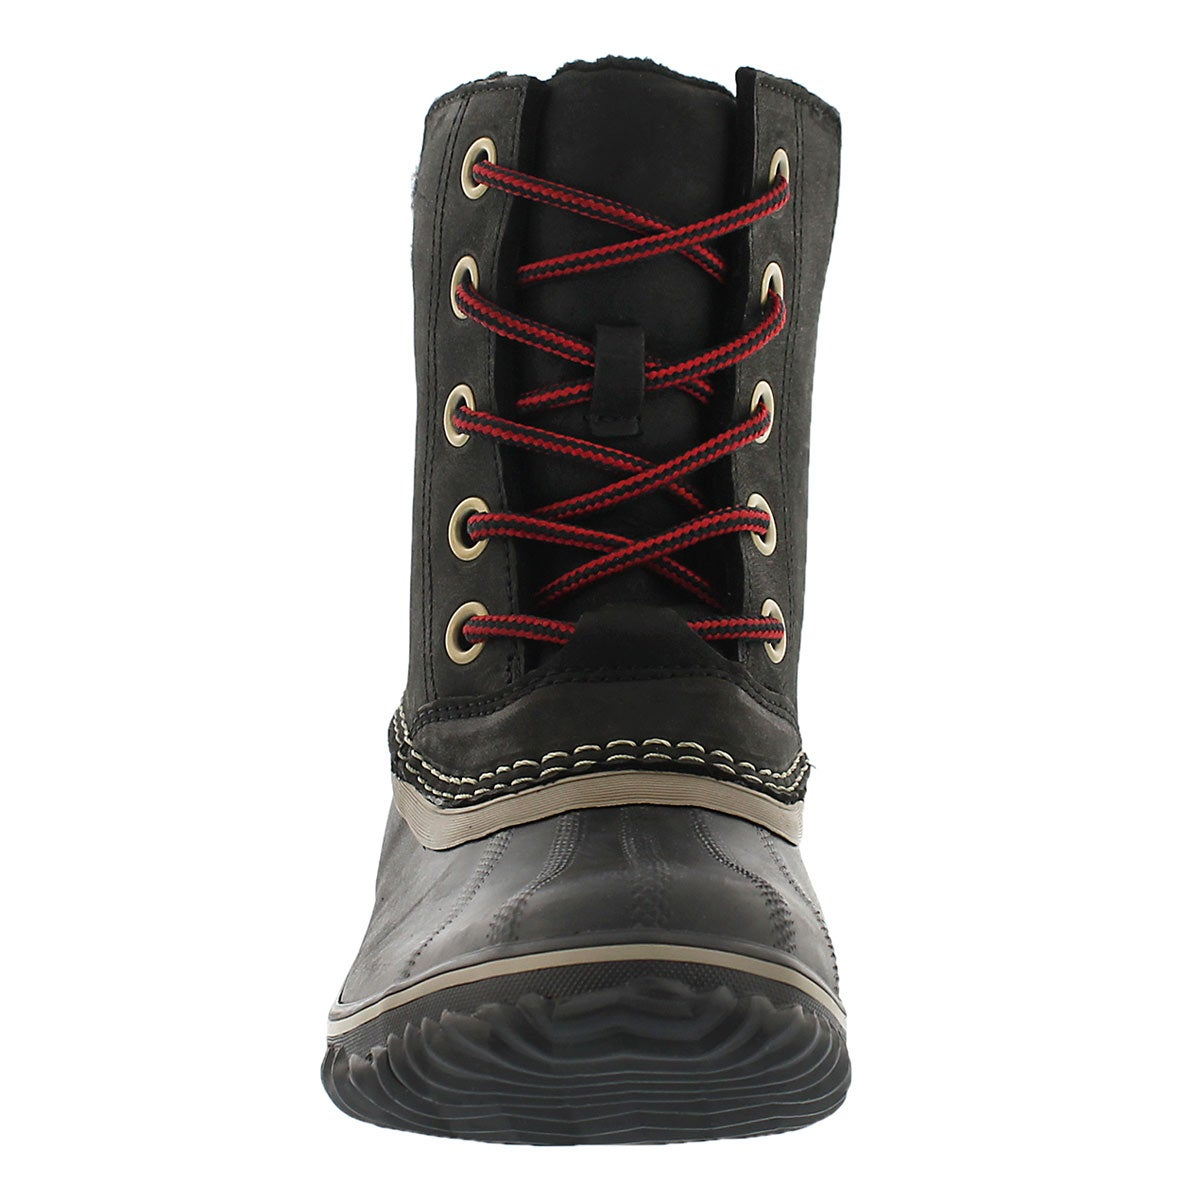 Lds Slimpack II Lace blk wtpf boot